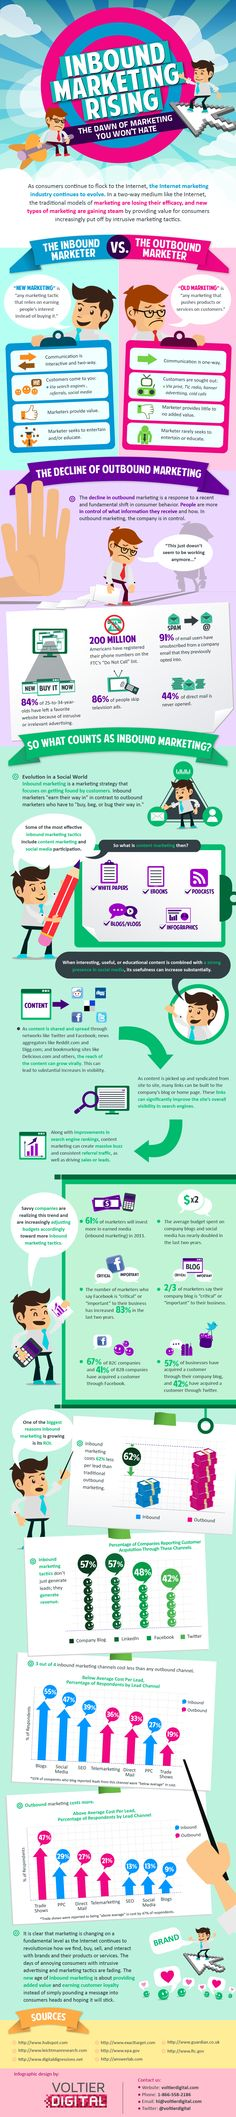 SEO vs PPC - Infographic